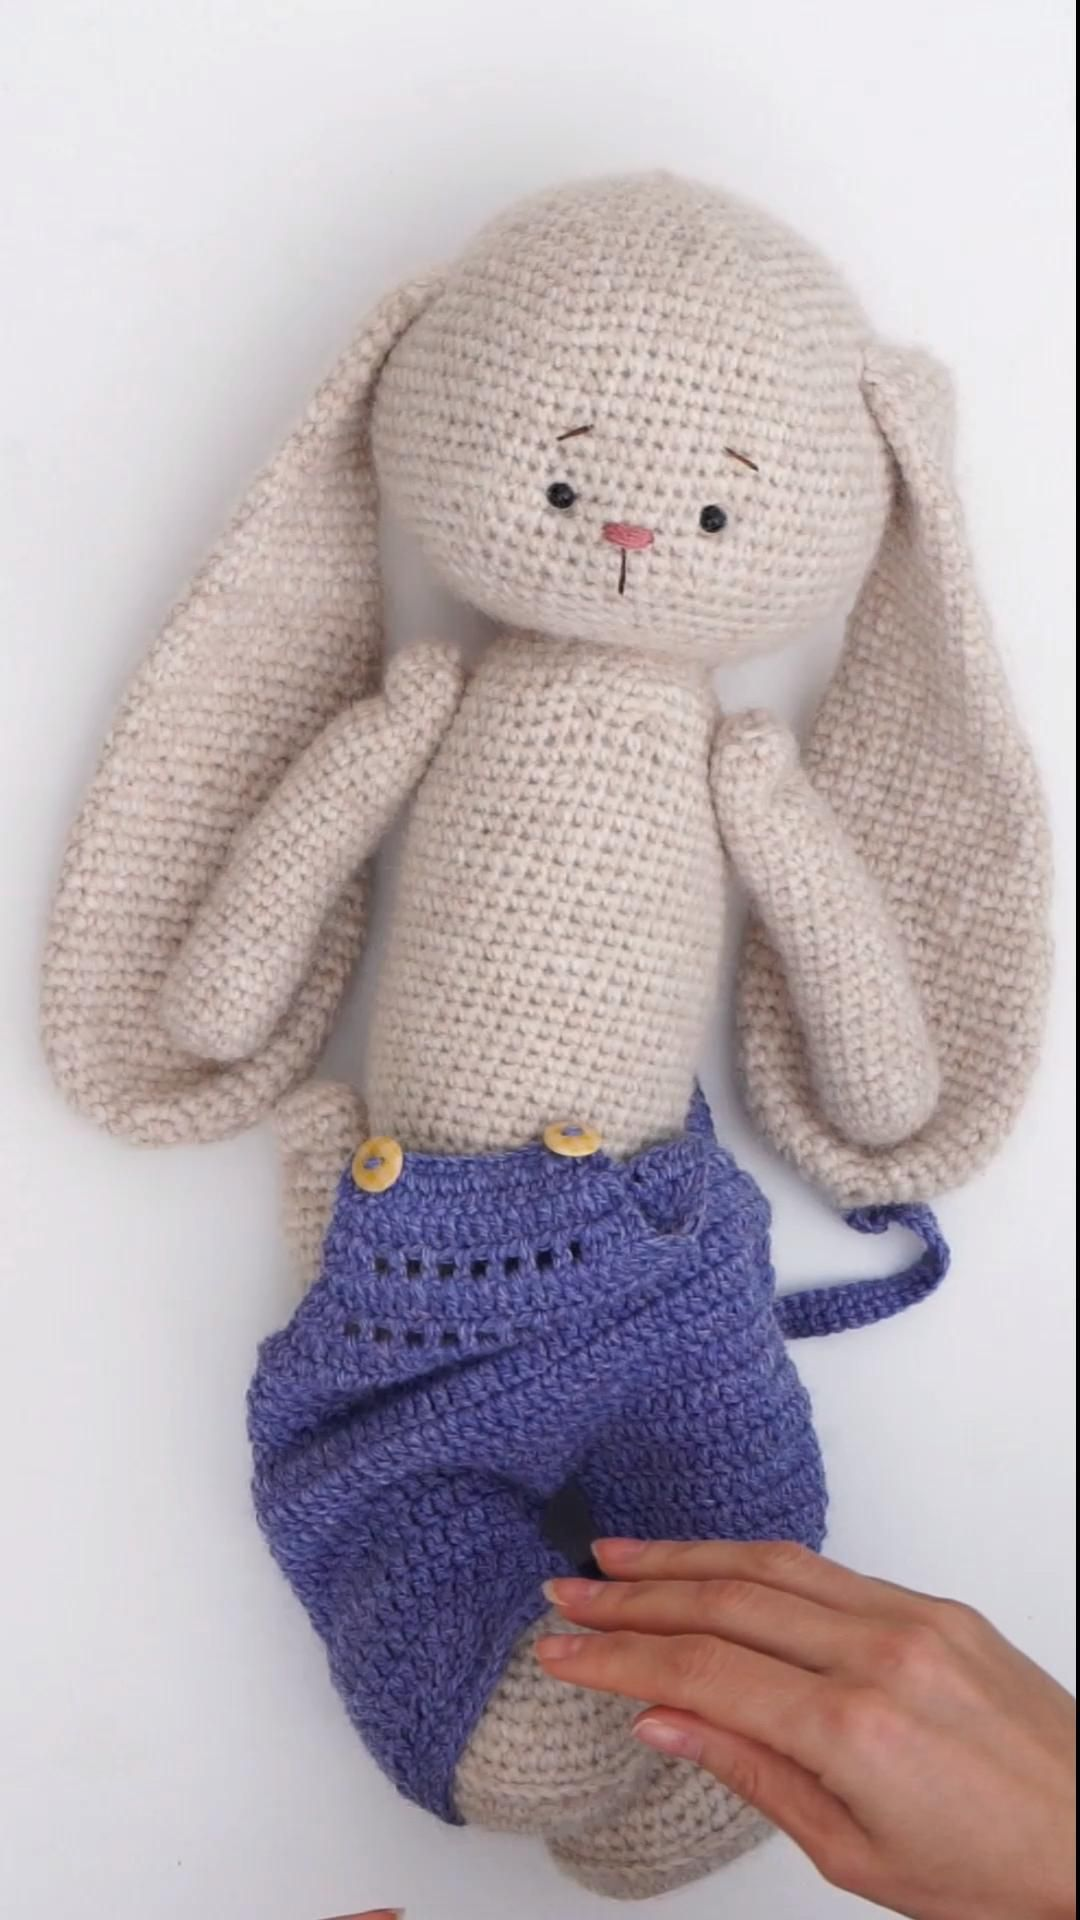 Crochet Pattern - Overalls for Toys